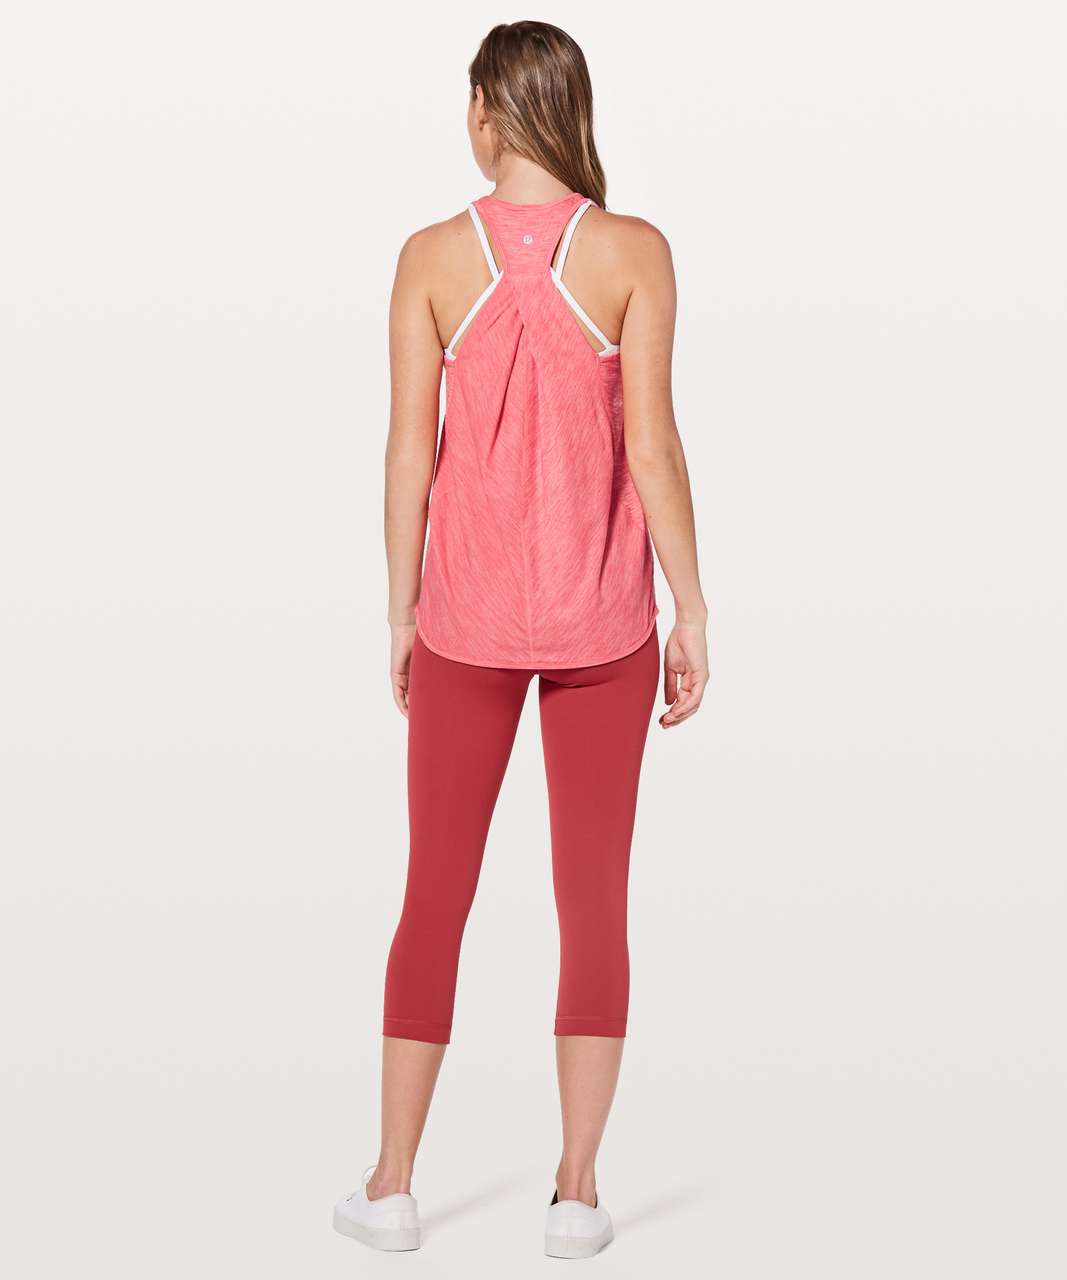 Lululemon Essential Tank - Heathered Glossy